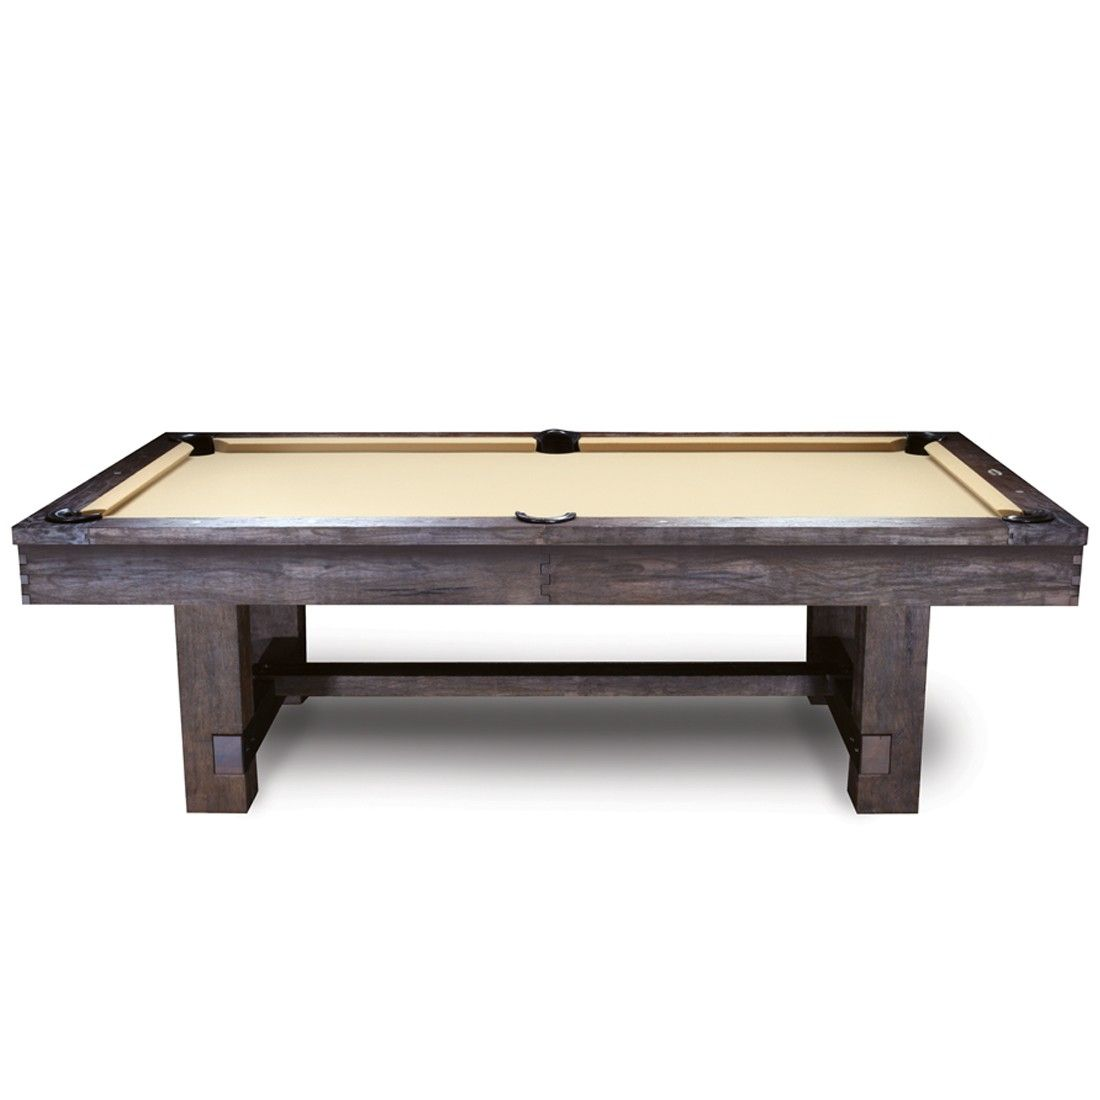 The Imperial Reno Billiard Table Is Made Of Solid Oak And Finished - 7 inch pool table